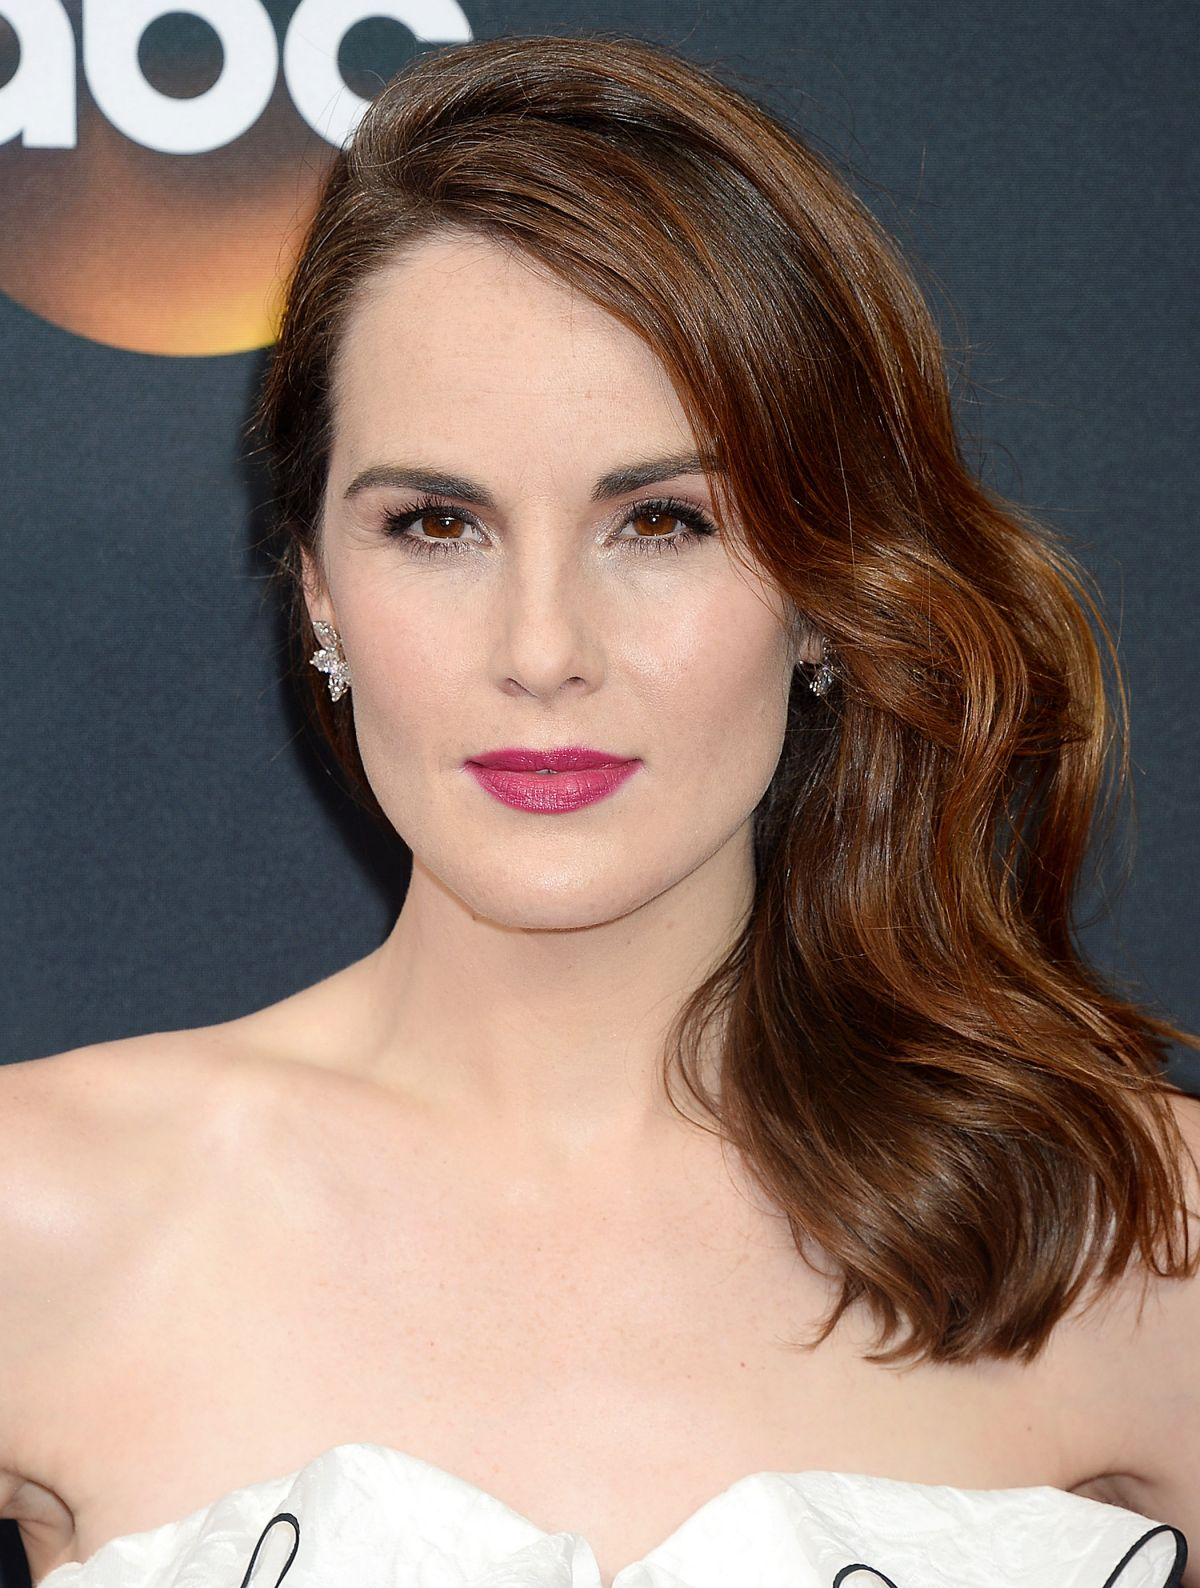 MICHELLE DOCKERY at 68th Annual Primetime Emmy Awards in Los Angeles ... Lovato